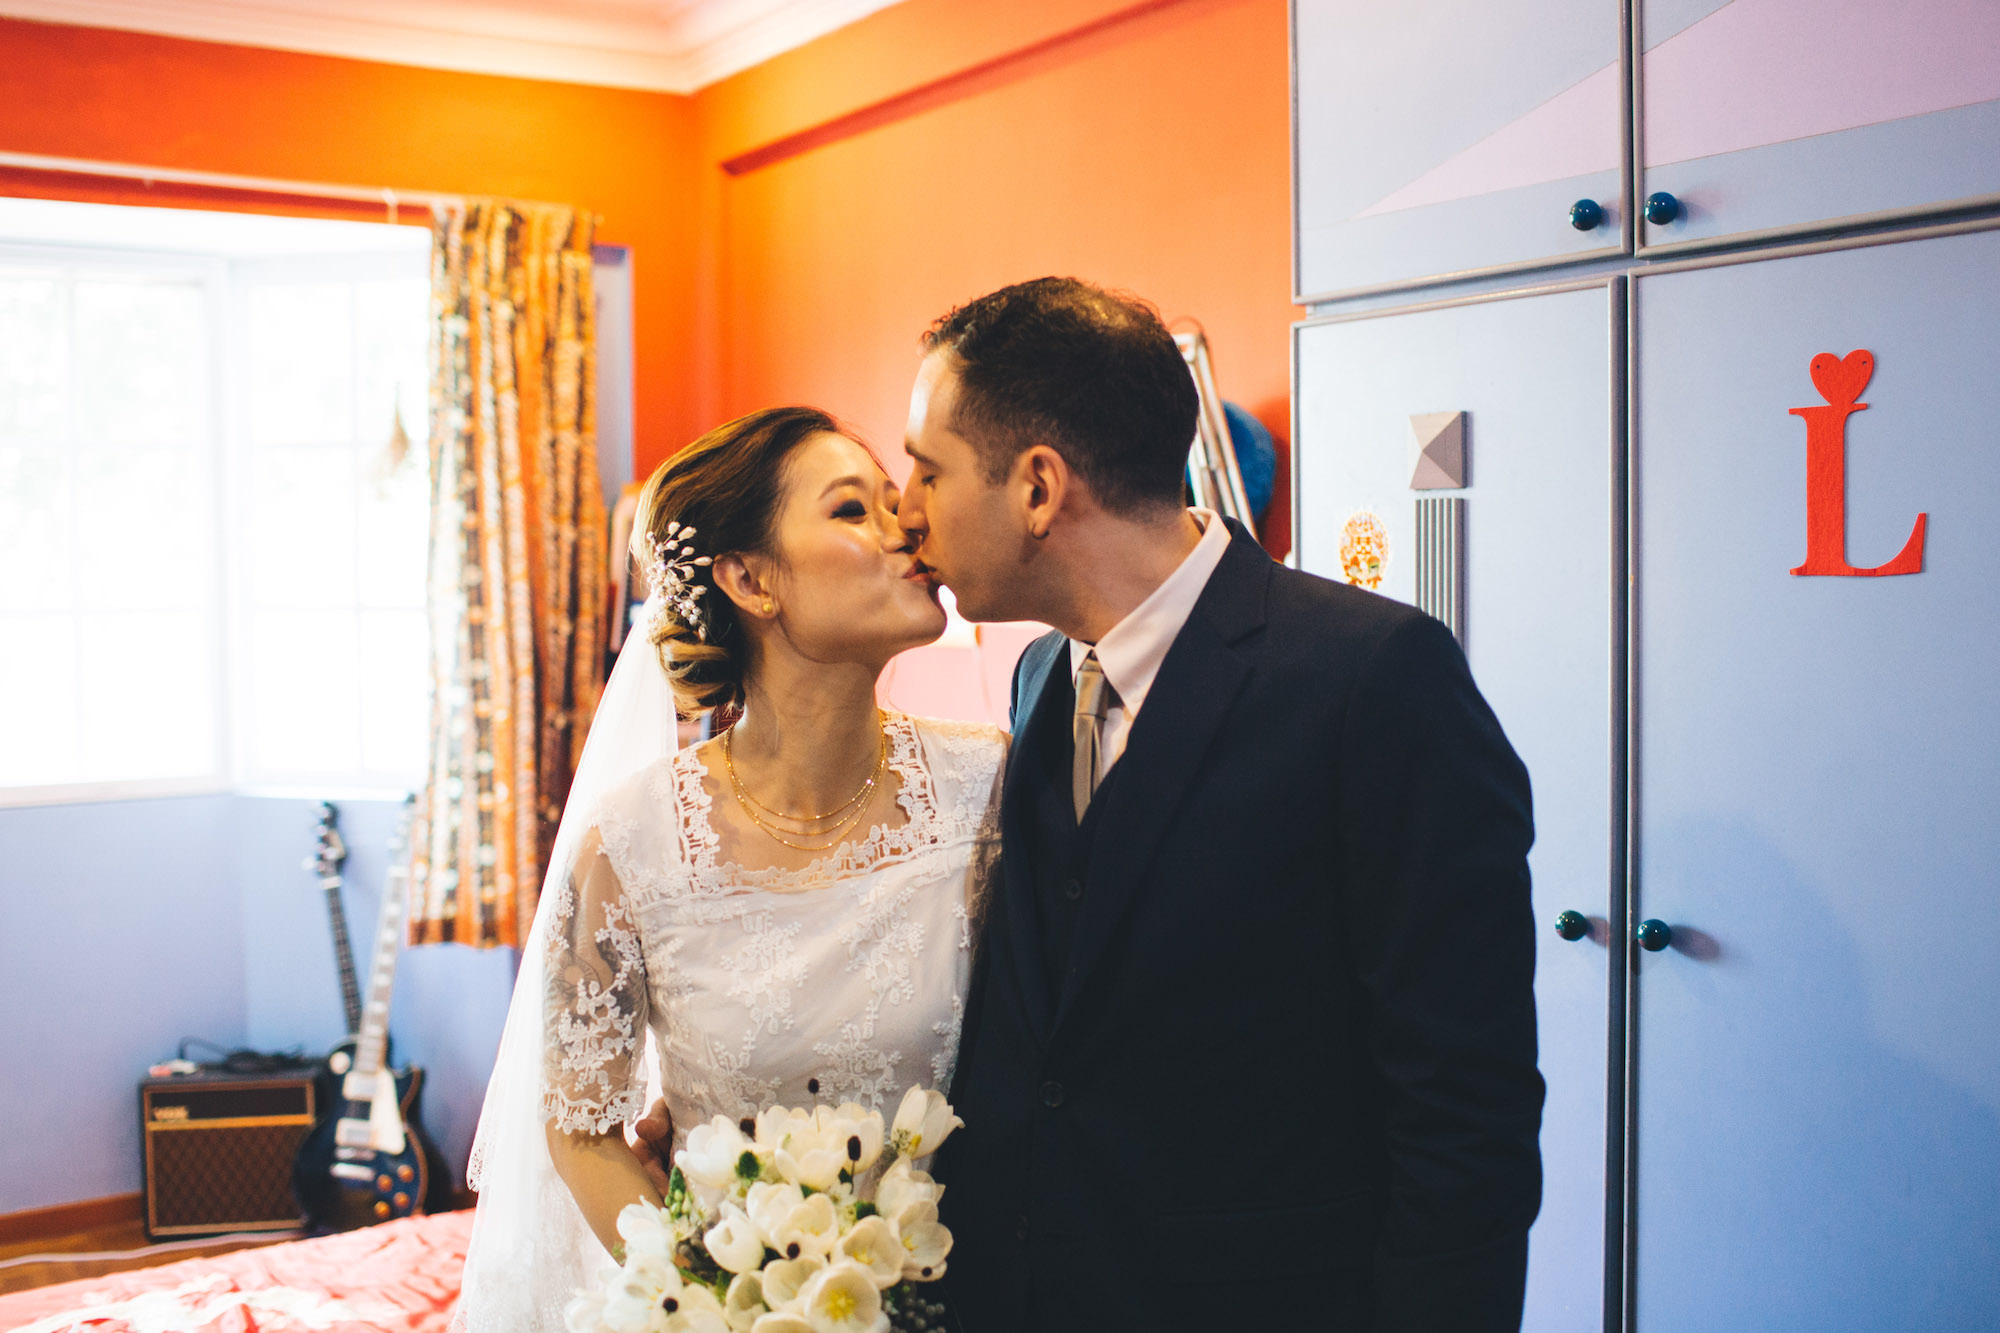 Eve & Marc - Singapore Wedding Photography  21.jpg